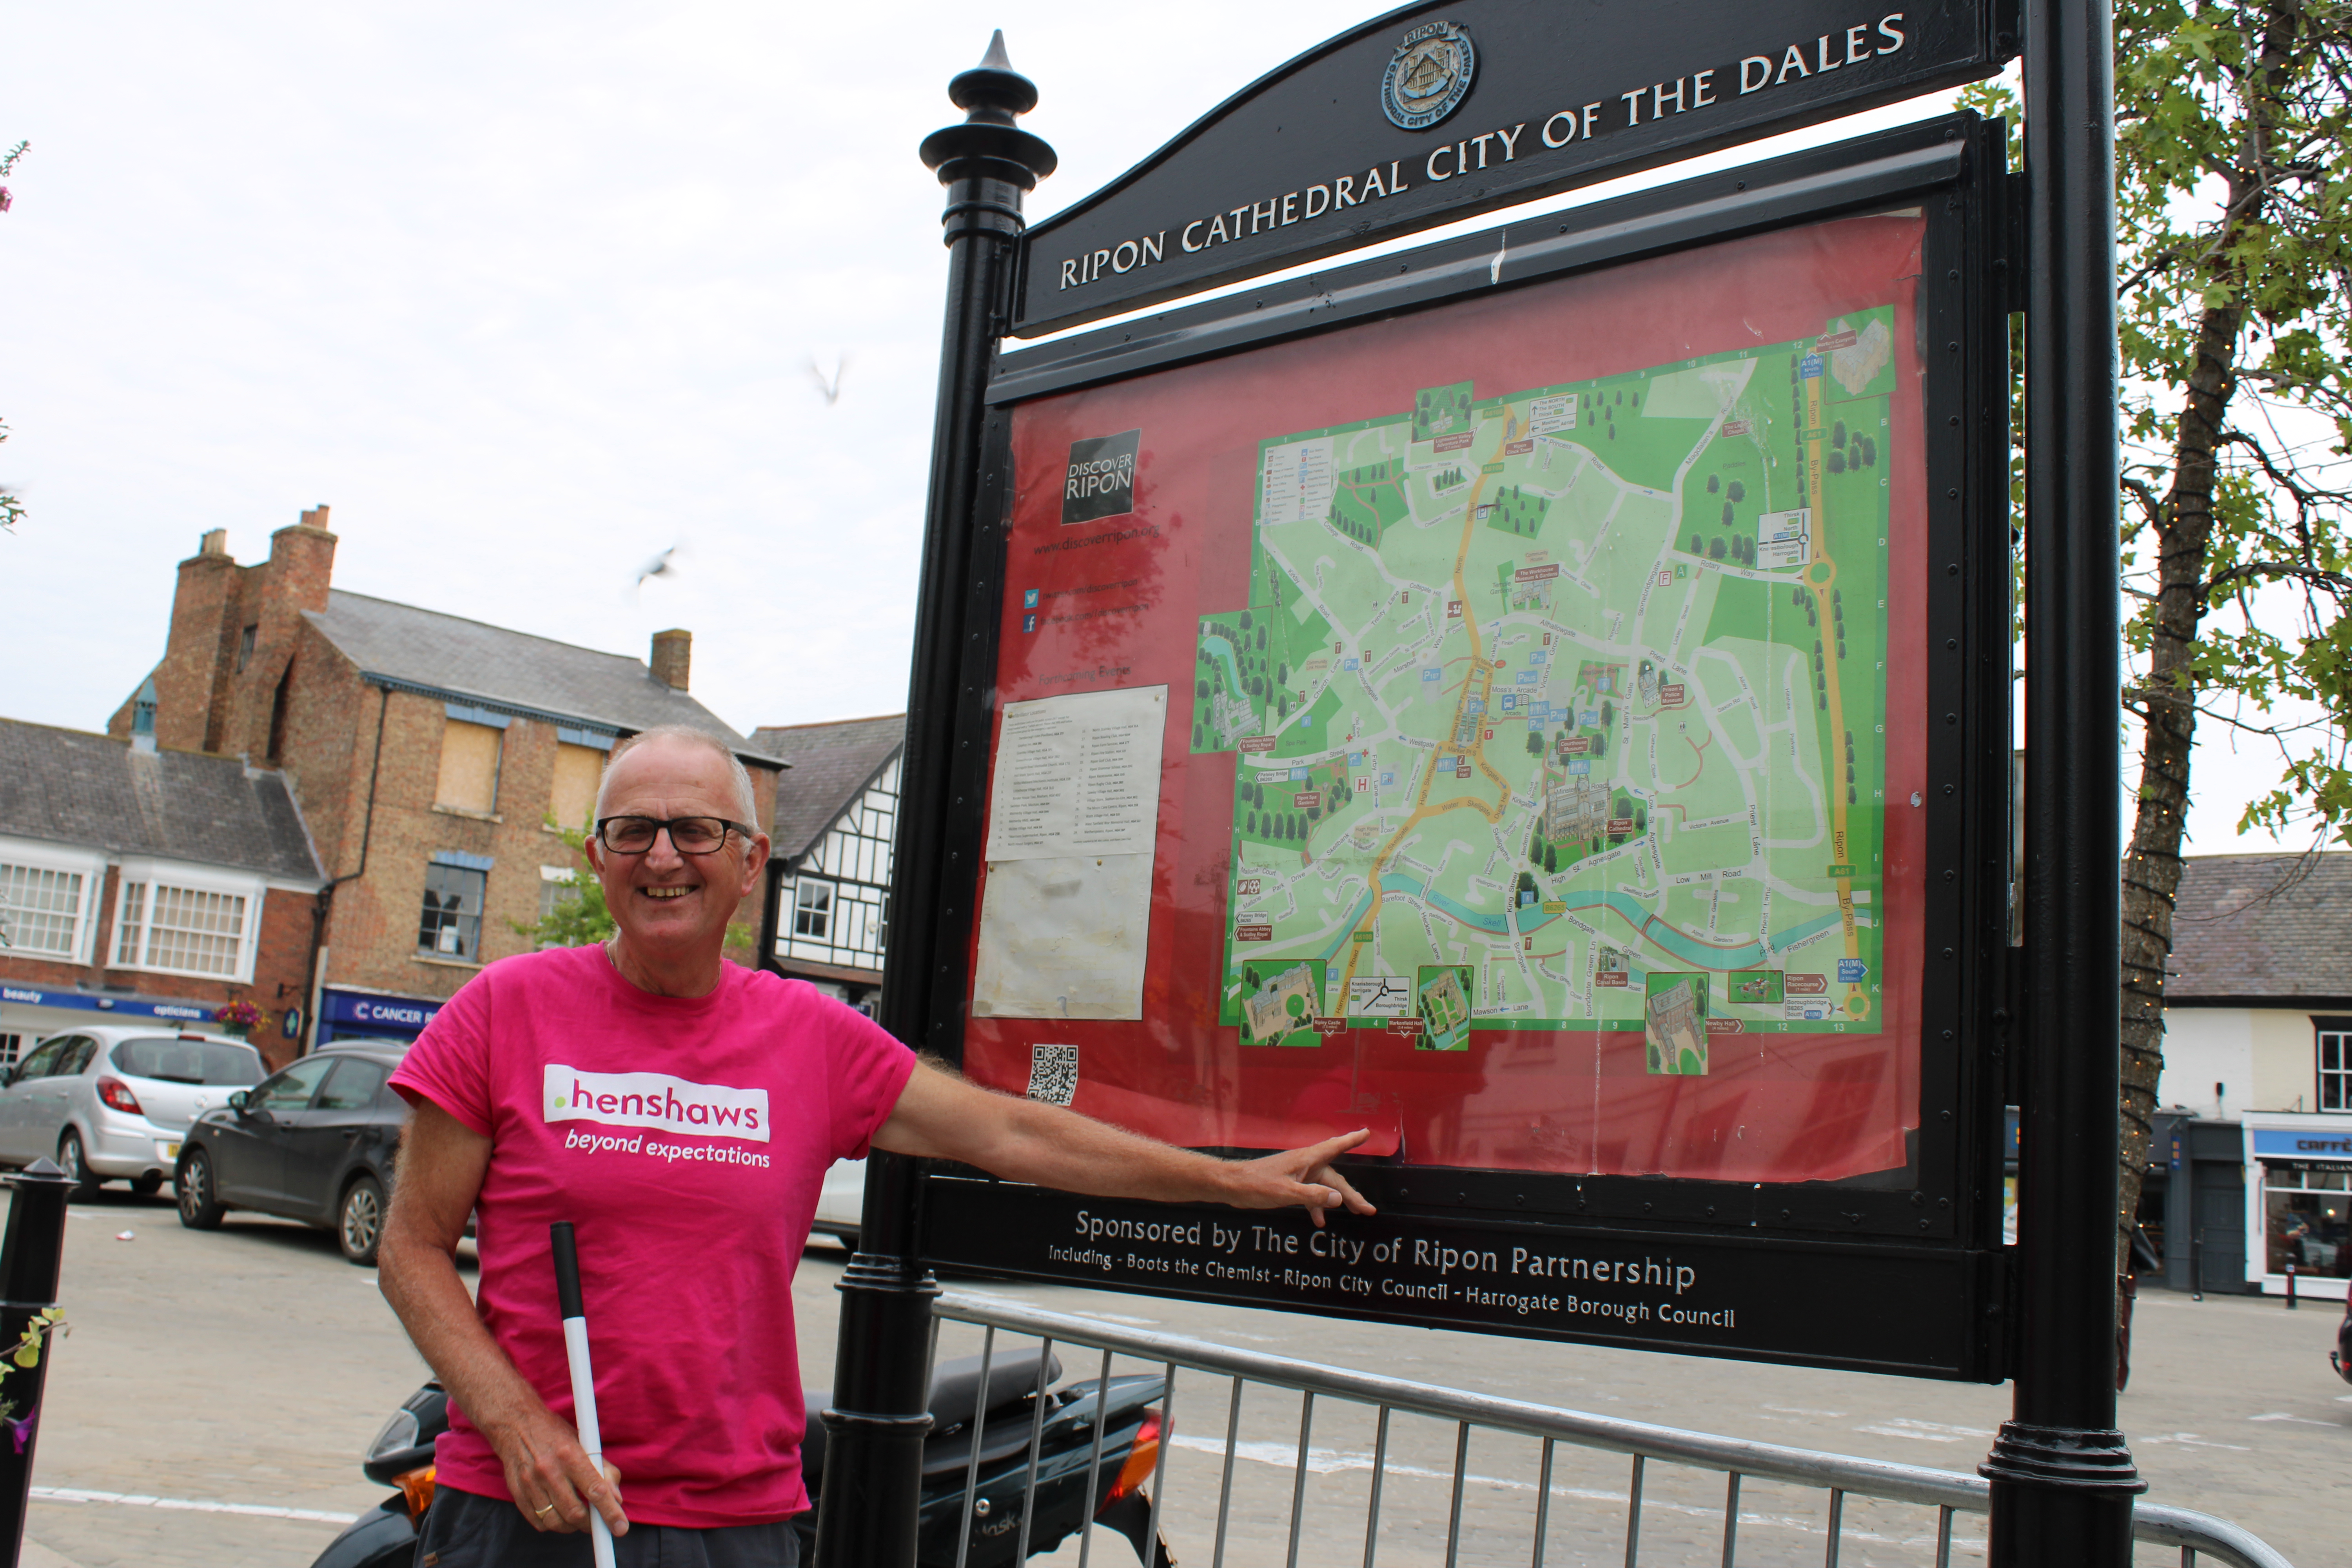 Dave stood in a pink Henshaws t-shirt smiling and pointing at a map of Ripon